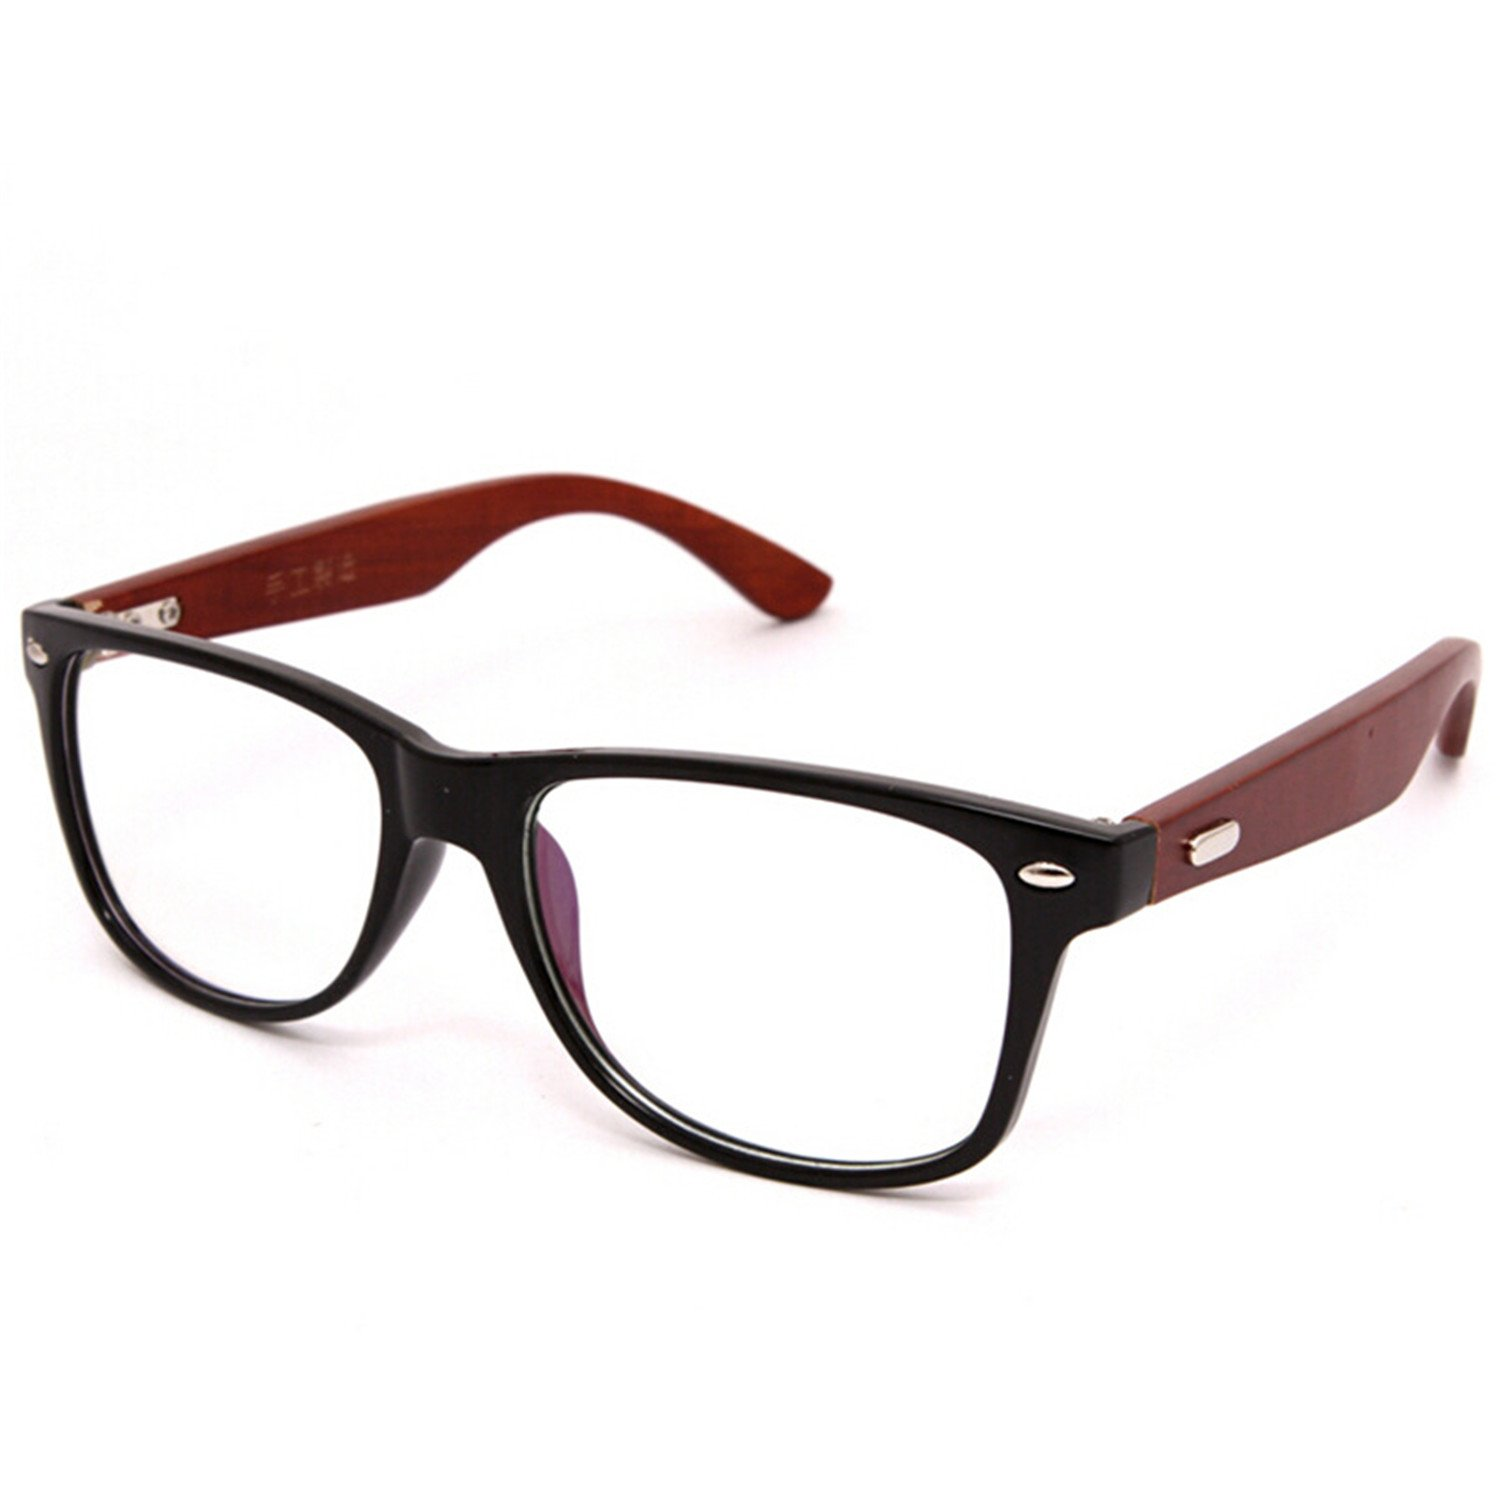 077c5fee950 Amazon.com  Surprising Day New High Grade Fashion Women And Men s Wooden  Glasses Frame Natural Wood Bamboo Eyeglasses Frames Vintage Spectacle Frames  ...